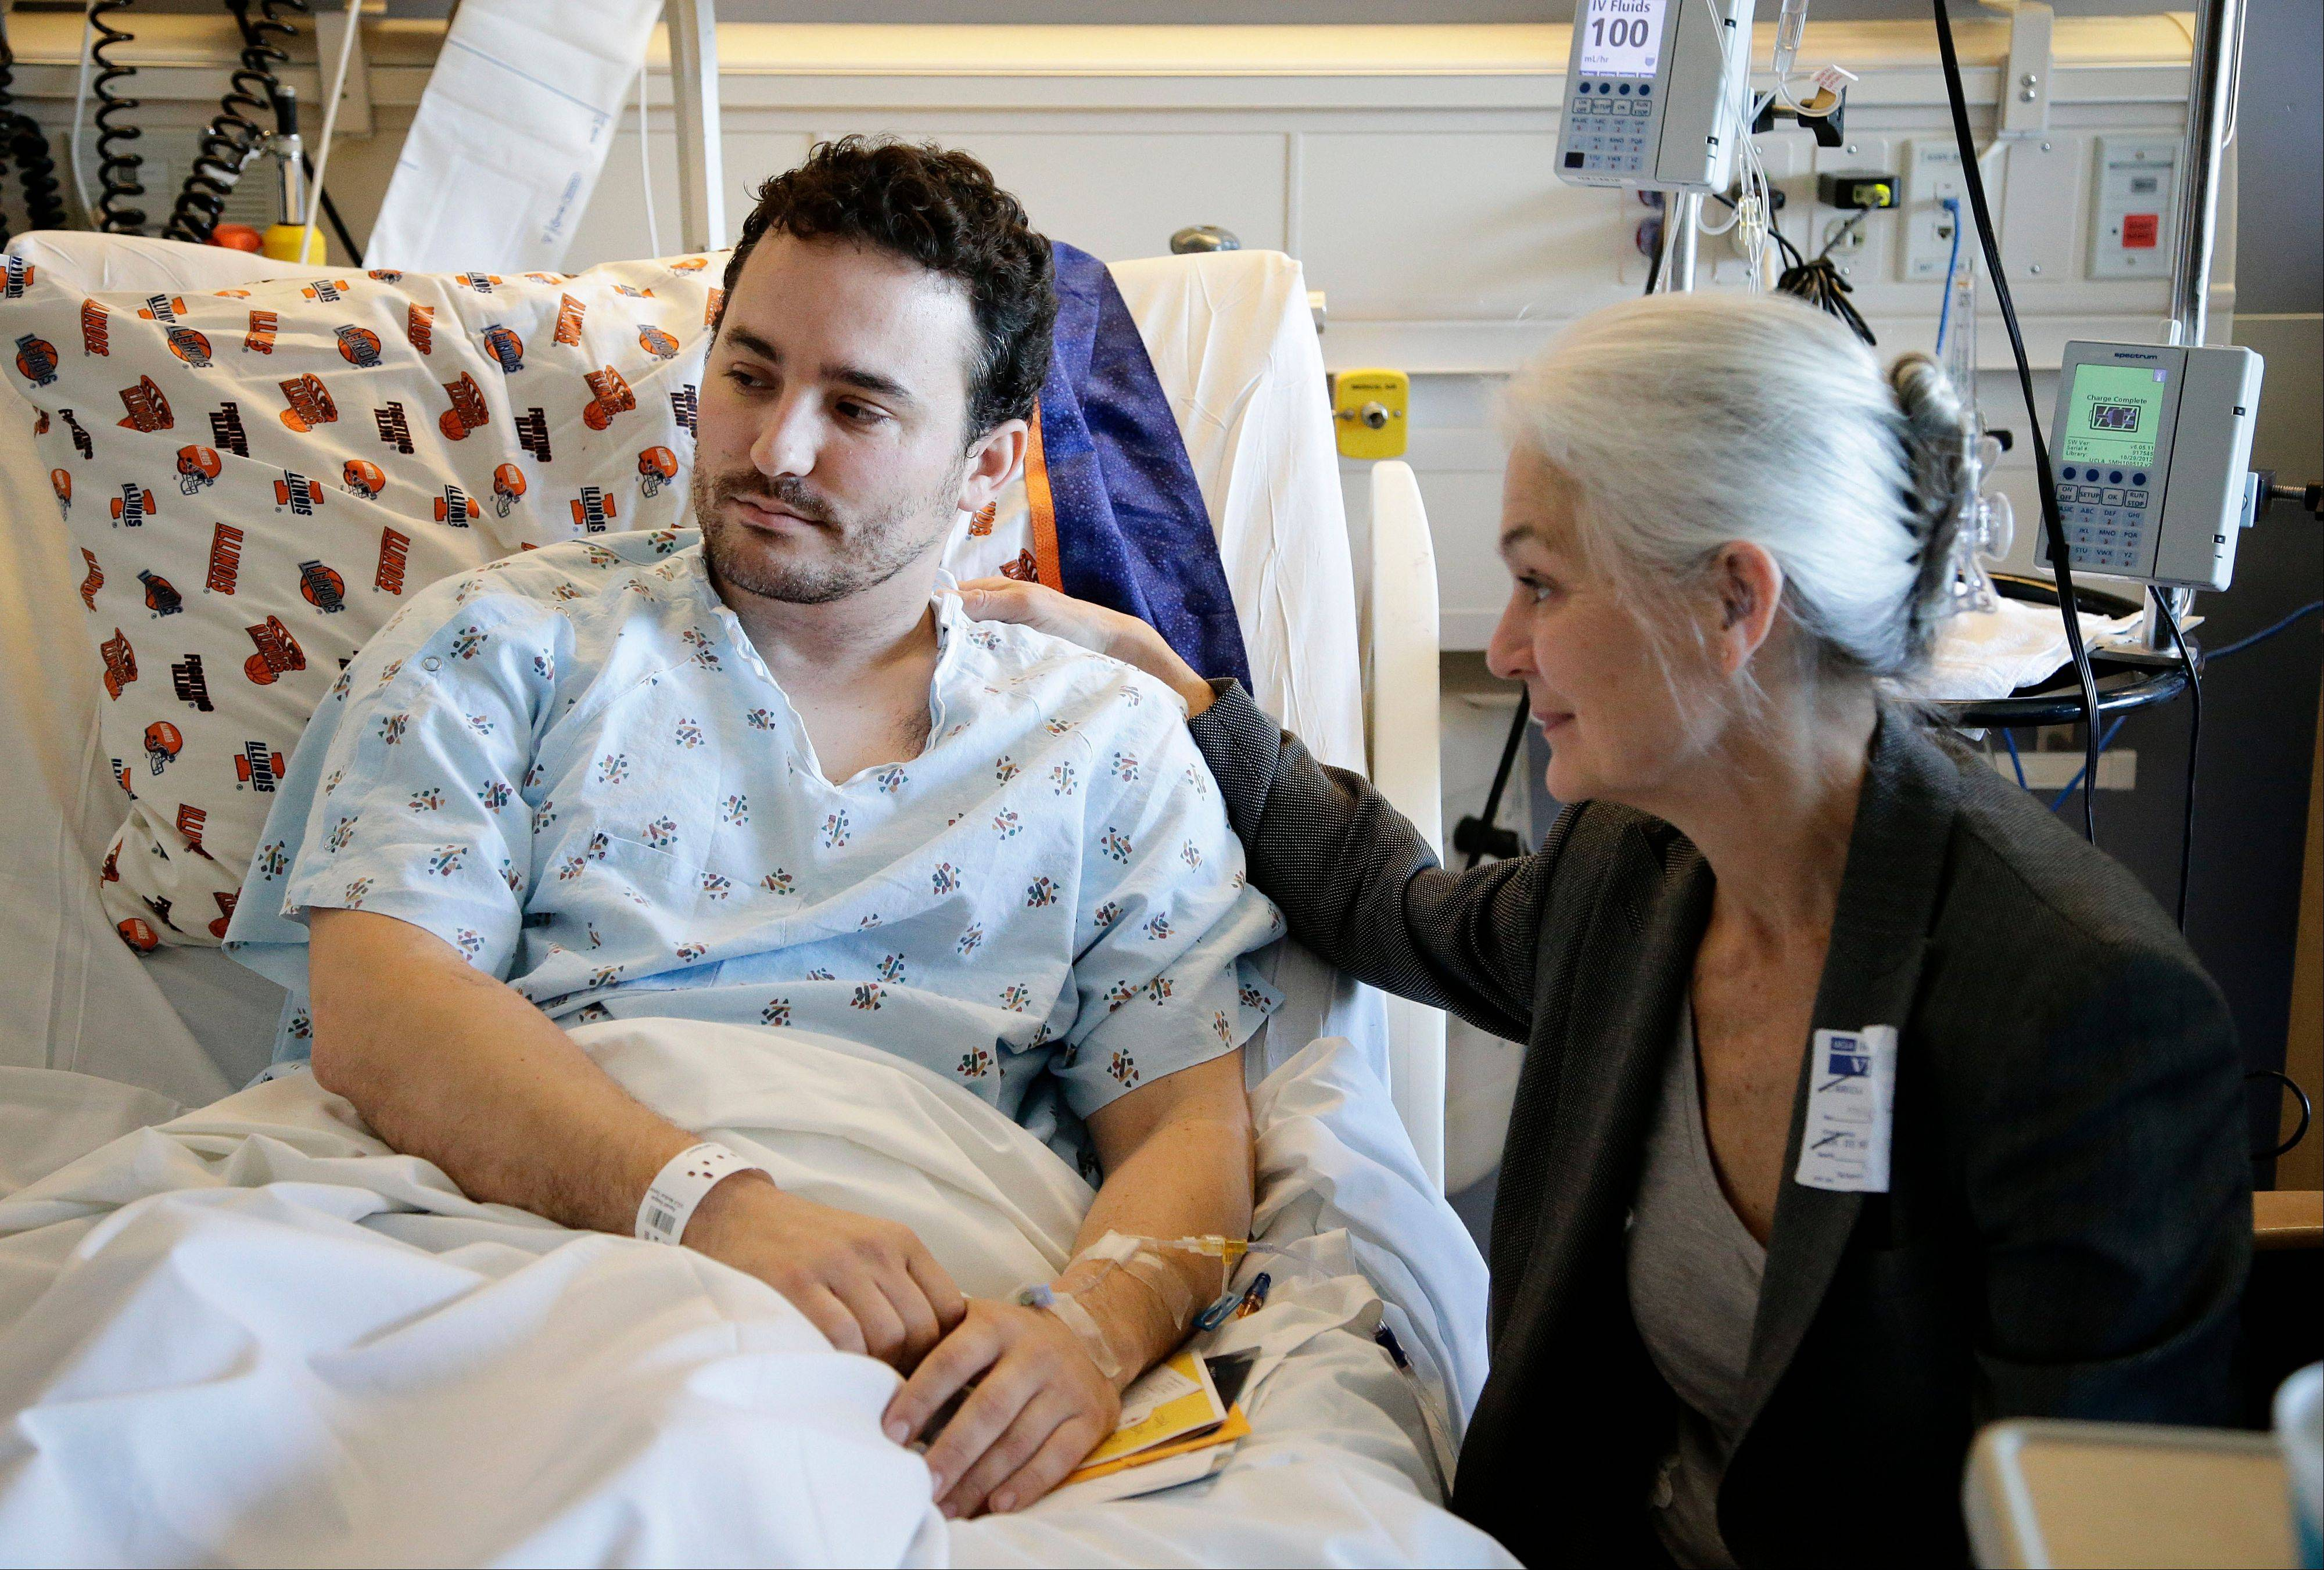 Judy Flaherty, right, comforts her son Brian Ludmer, who was the lone civilian wounded by gunfire in the shooting rampage at Los Angeles International Airport Friday, Nov. 1, 2013.